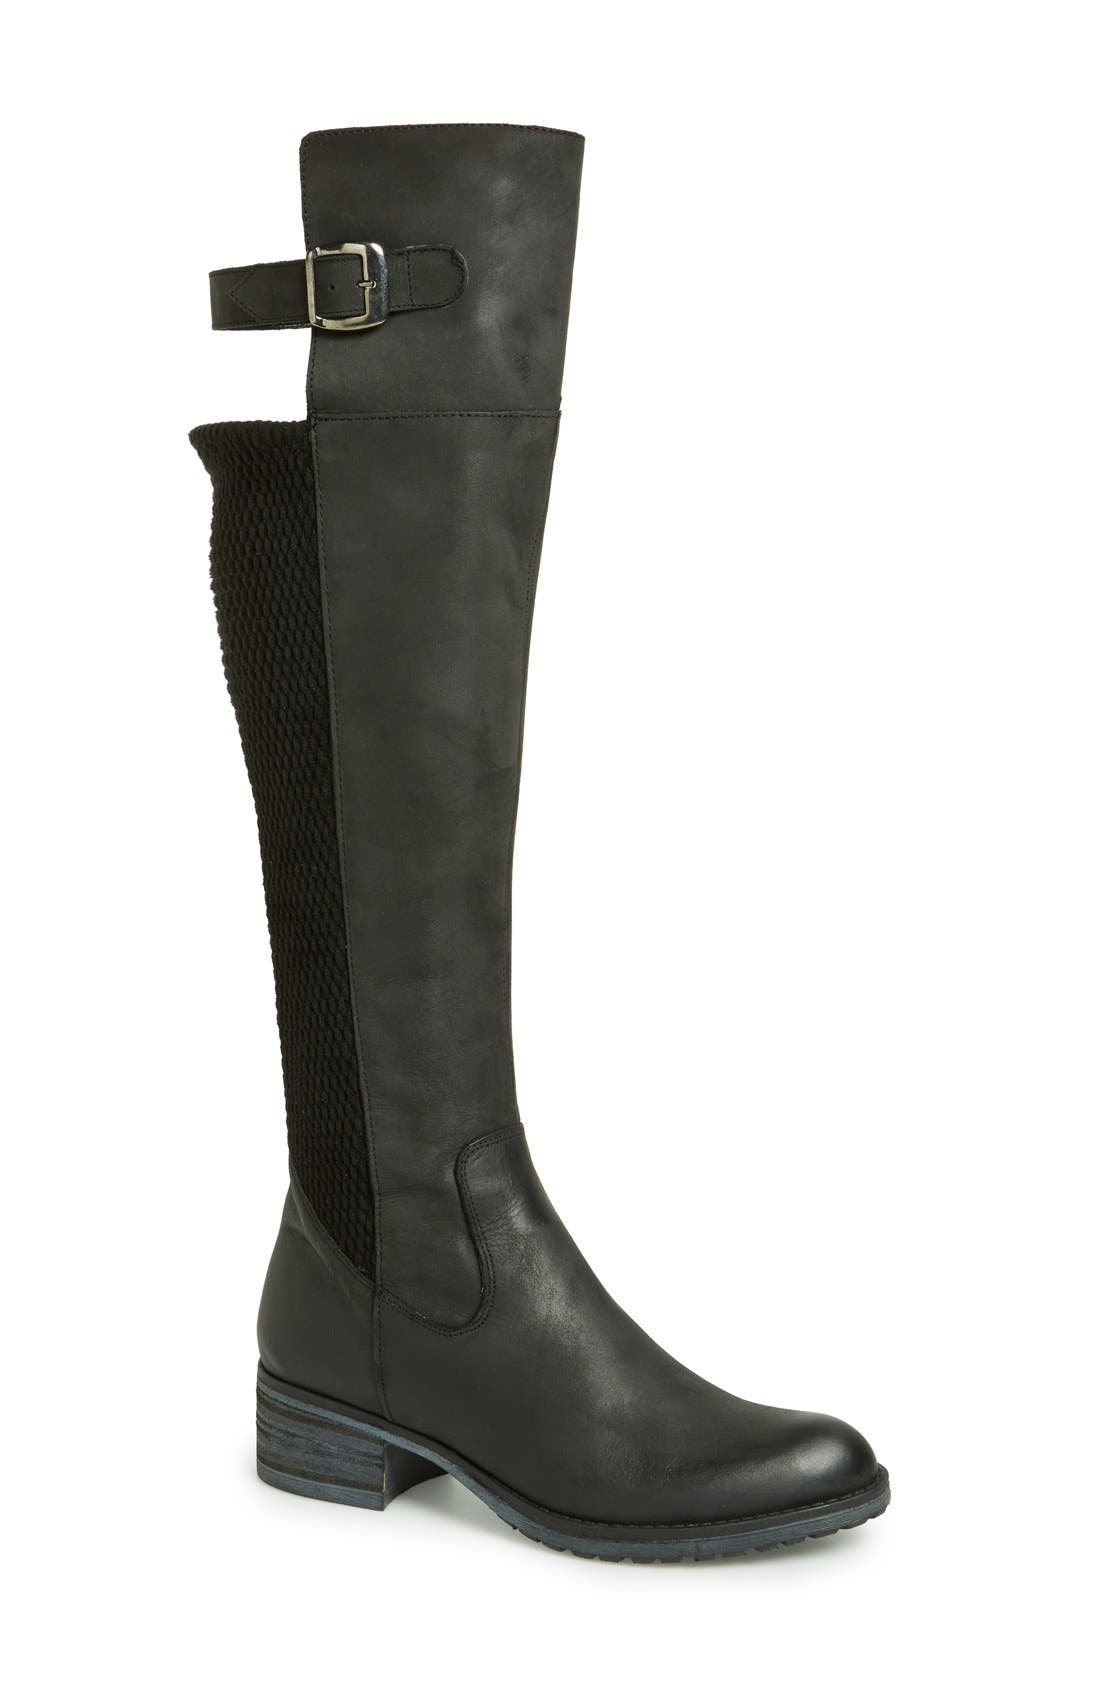 Alternate Image 1 Selected - Summit 'Lizzie' Over the Knee Boot (Women)